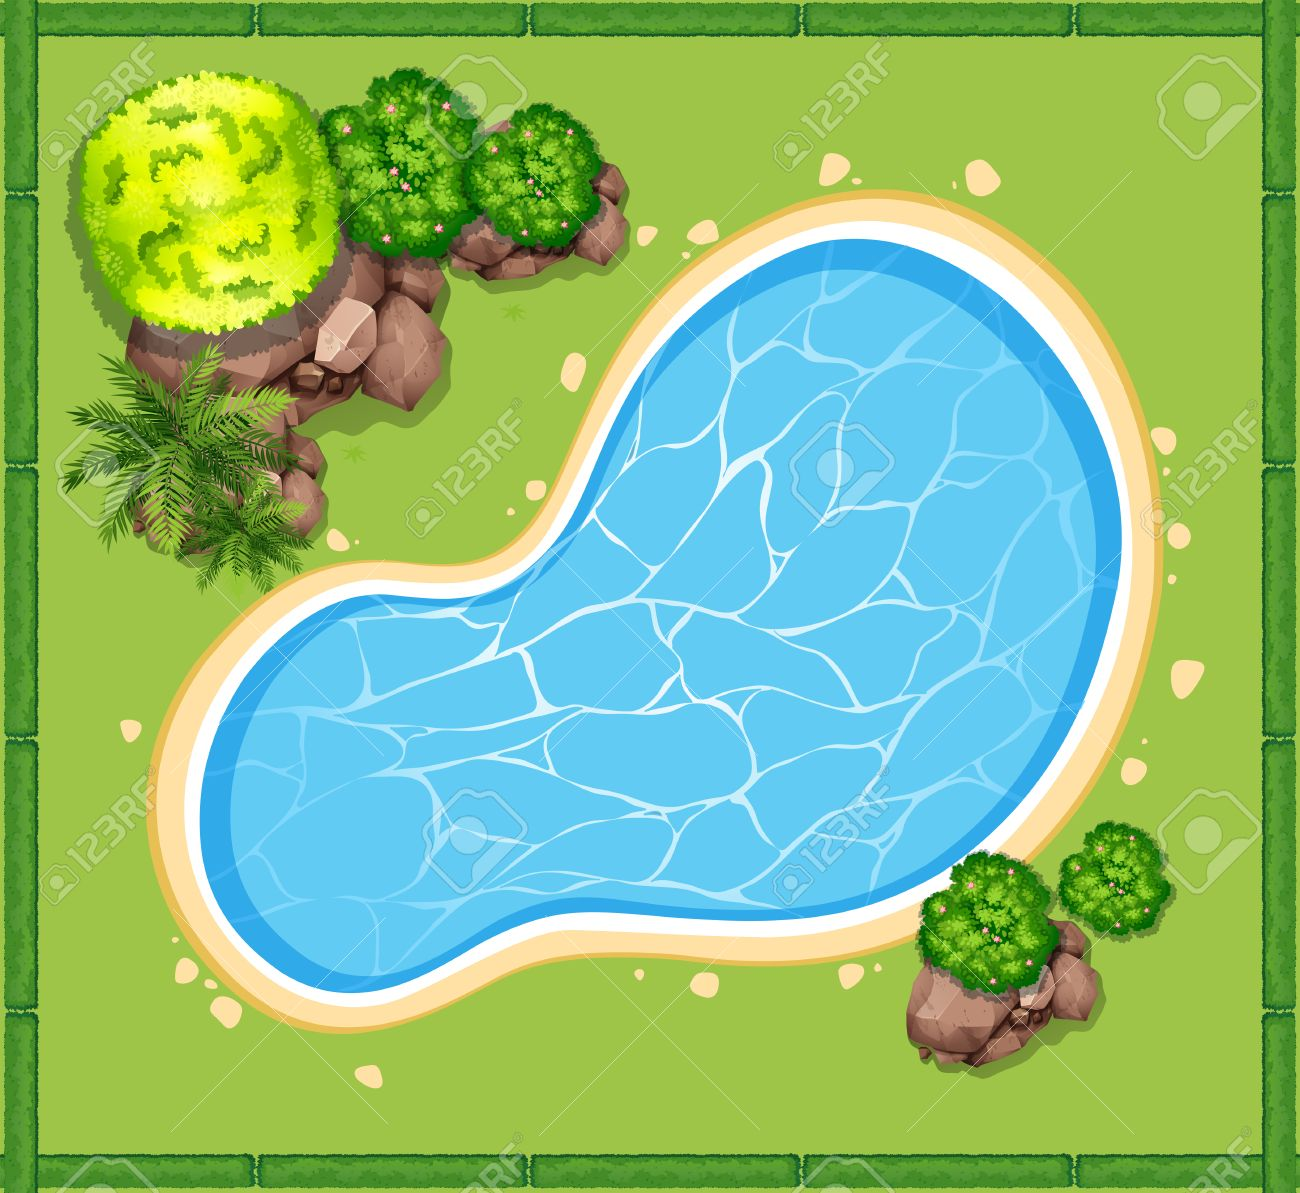 Plant top view vector in group download free vector art stock - Plants Top View Top View Of Swimming Pool In The Garden Illustration Illustration